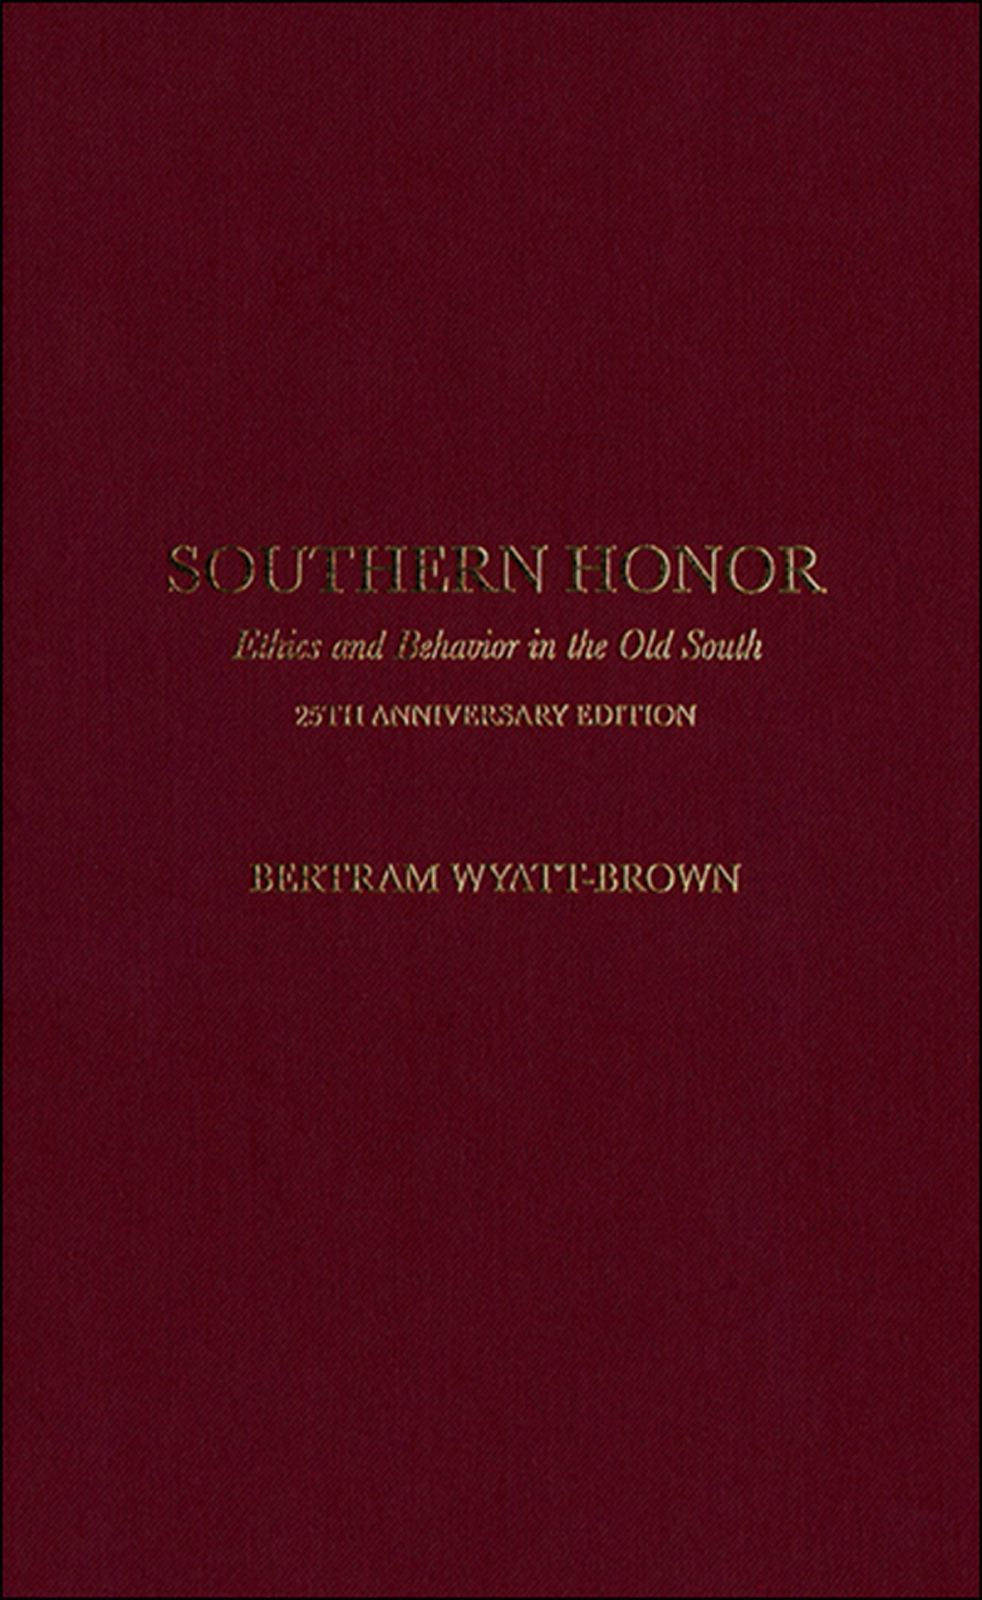 Southern Honor : Ethics and Behavior in the Old South